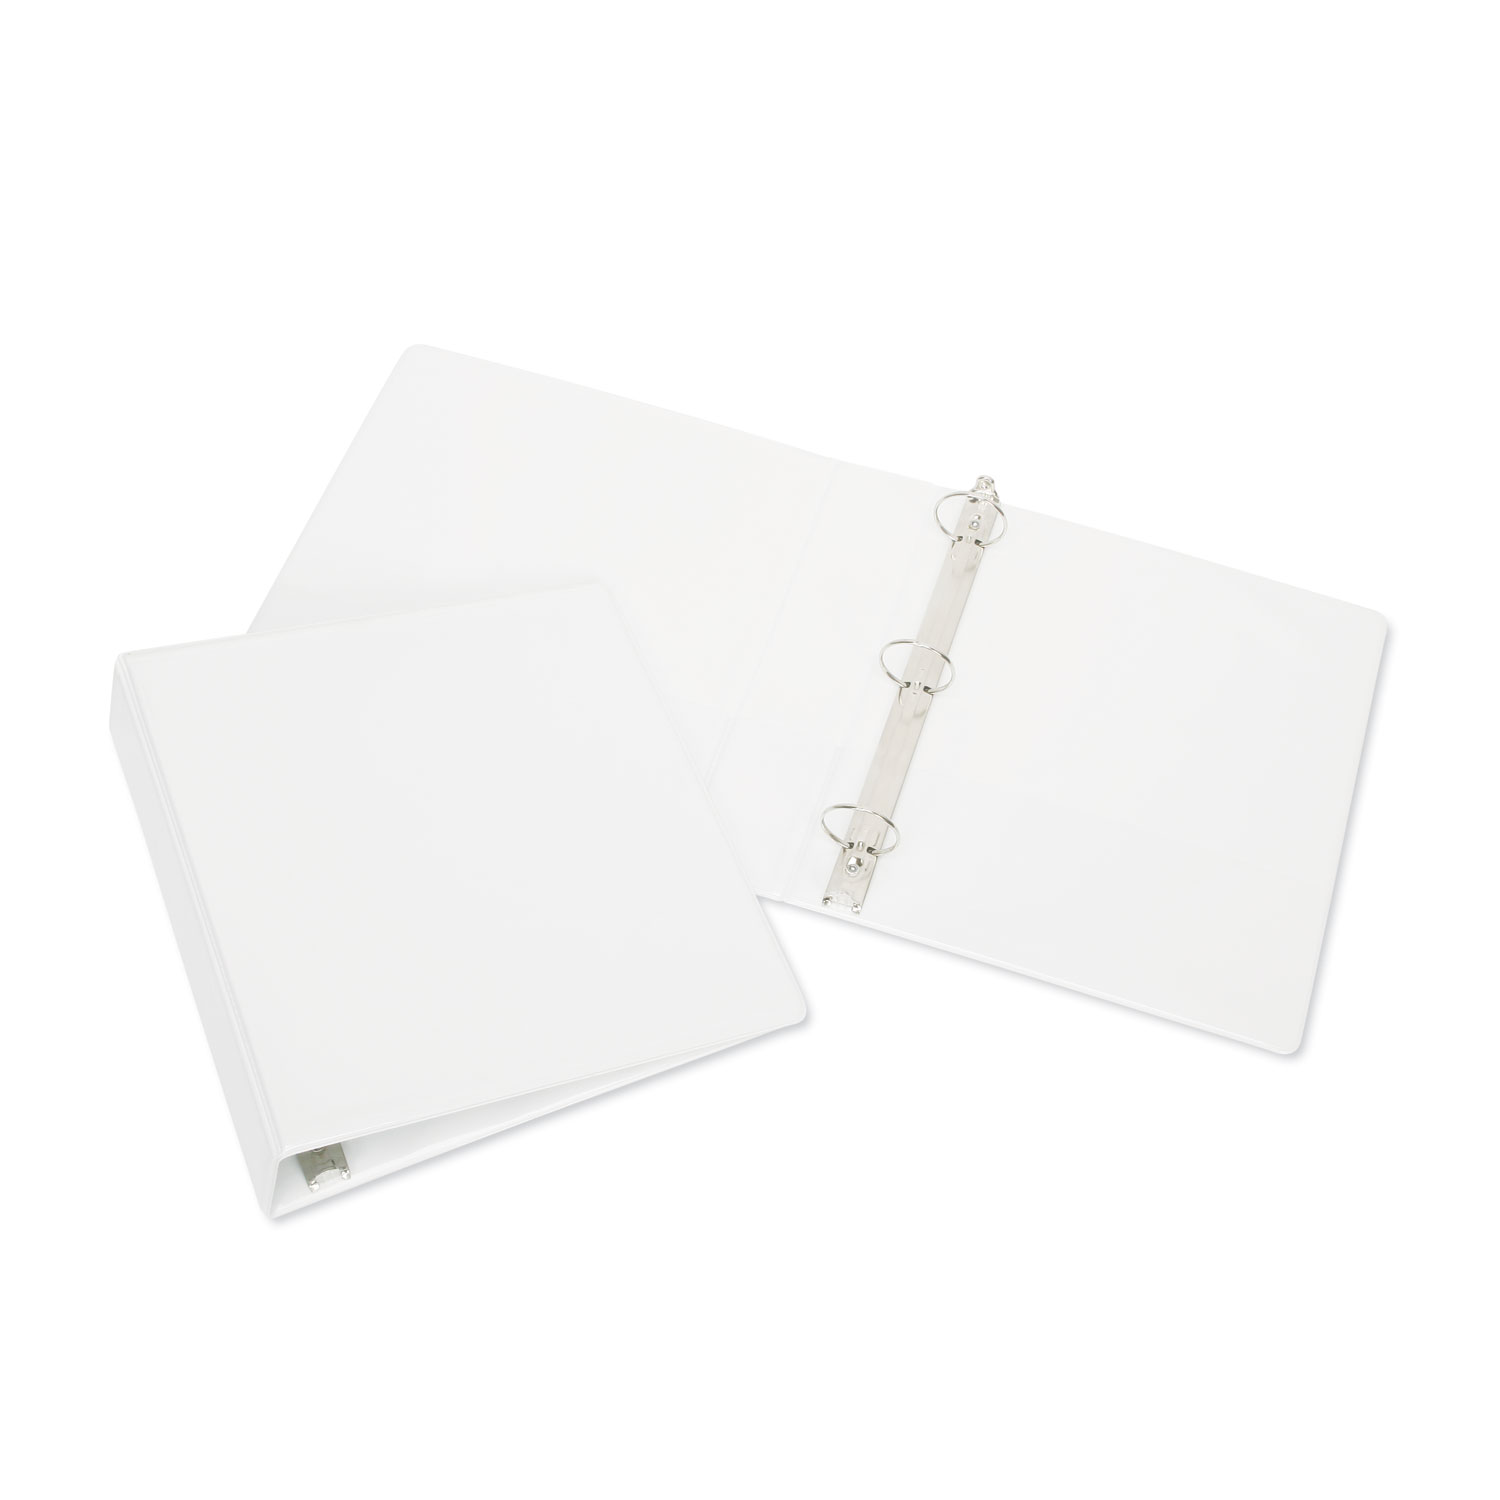 7510015104859 Round Ring View Binder 3 Rings 05 Capacity 11 X 85 White